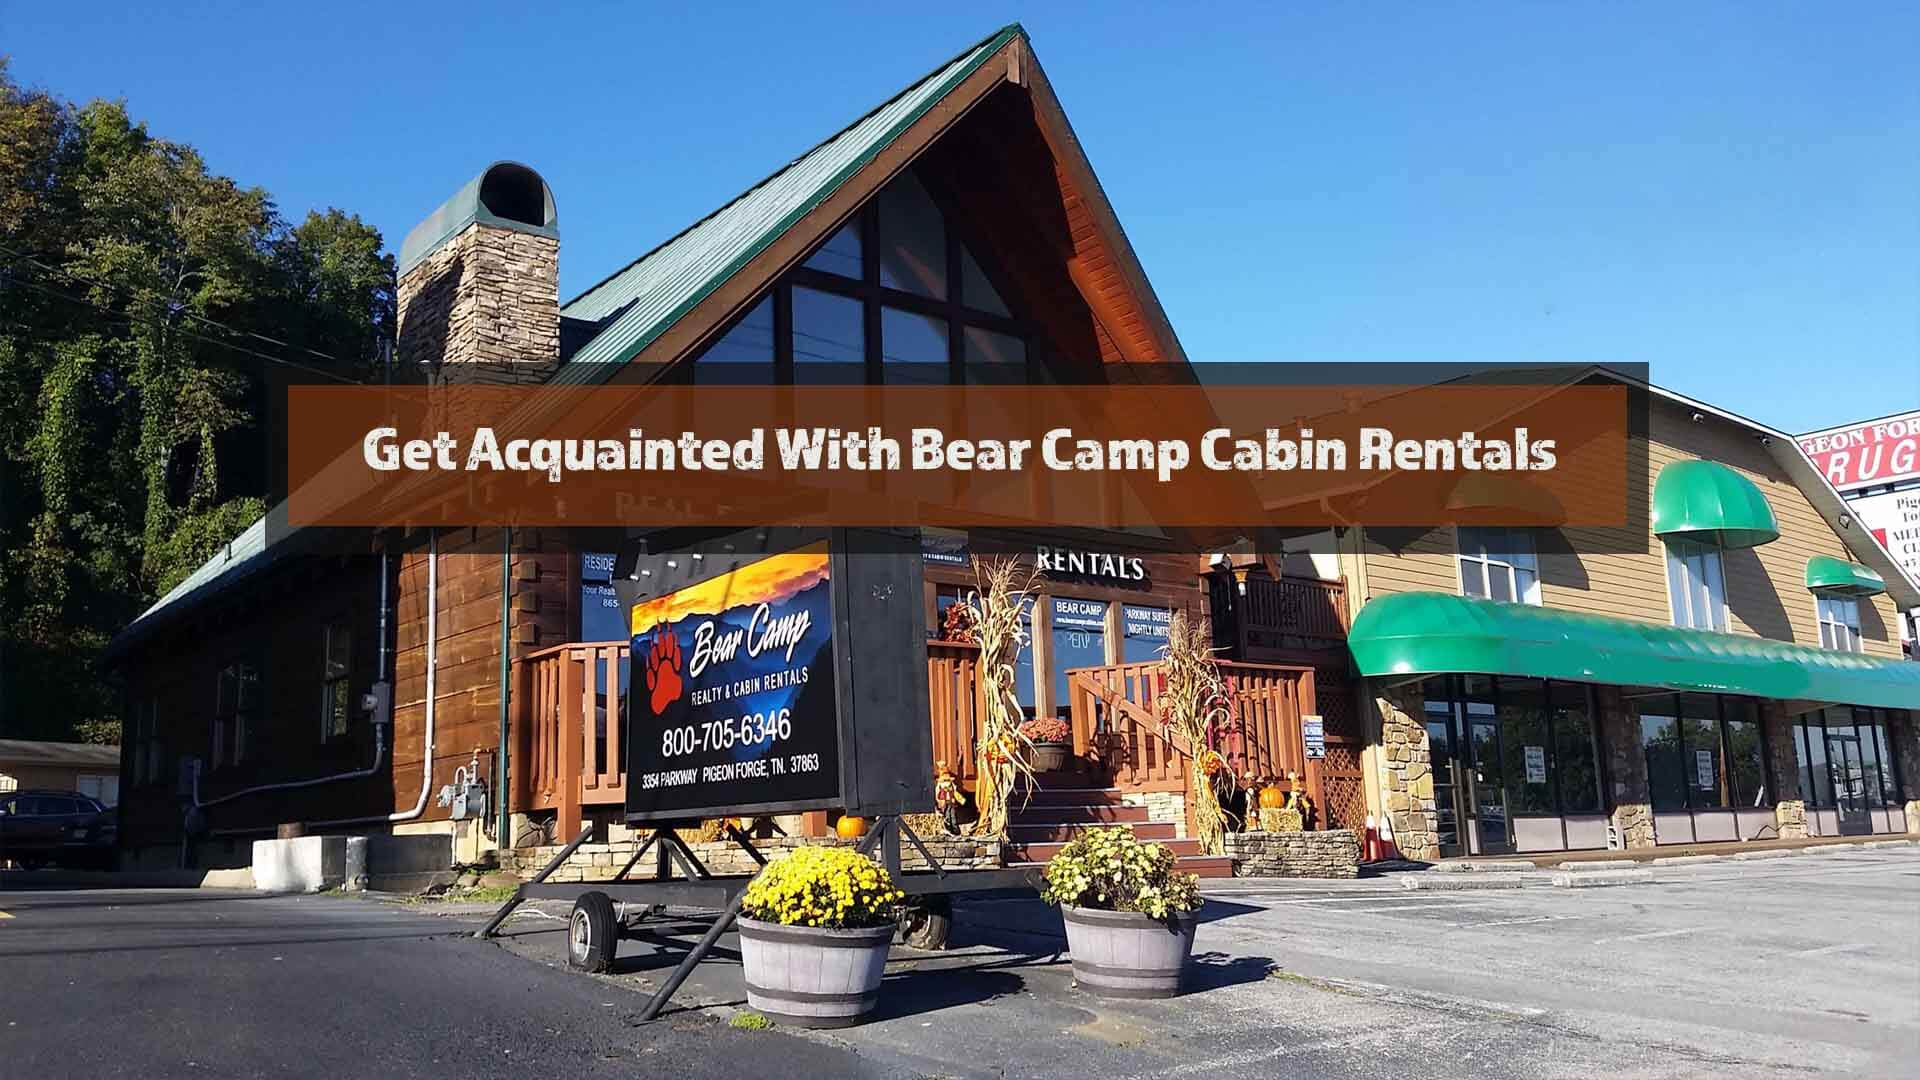 Get-Acquainted-With-Bear-Camp-Cabin-Rentals.jpg